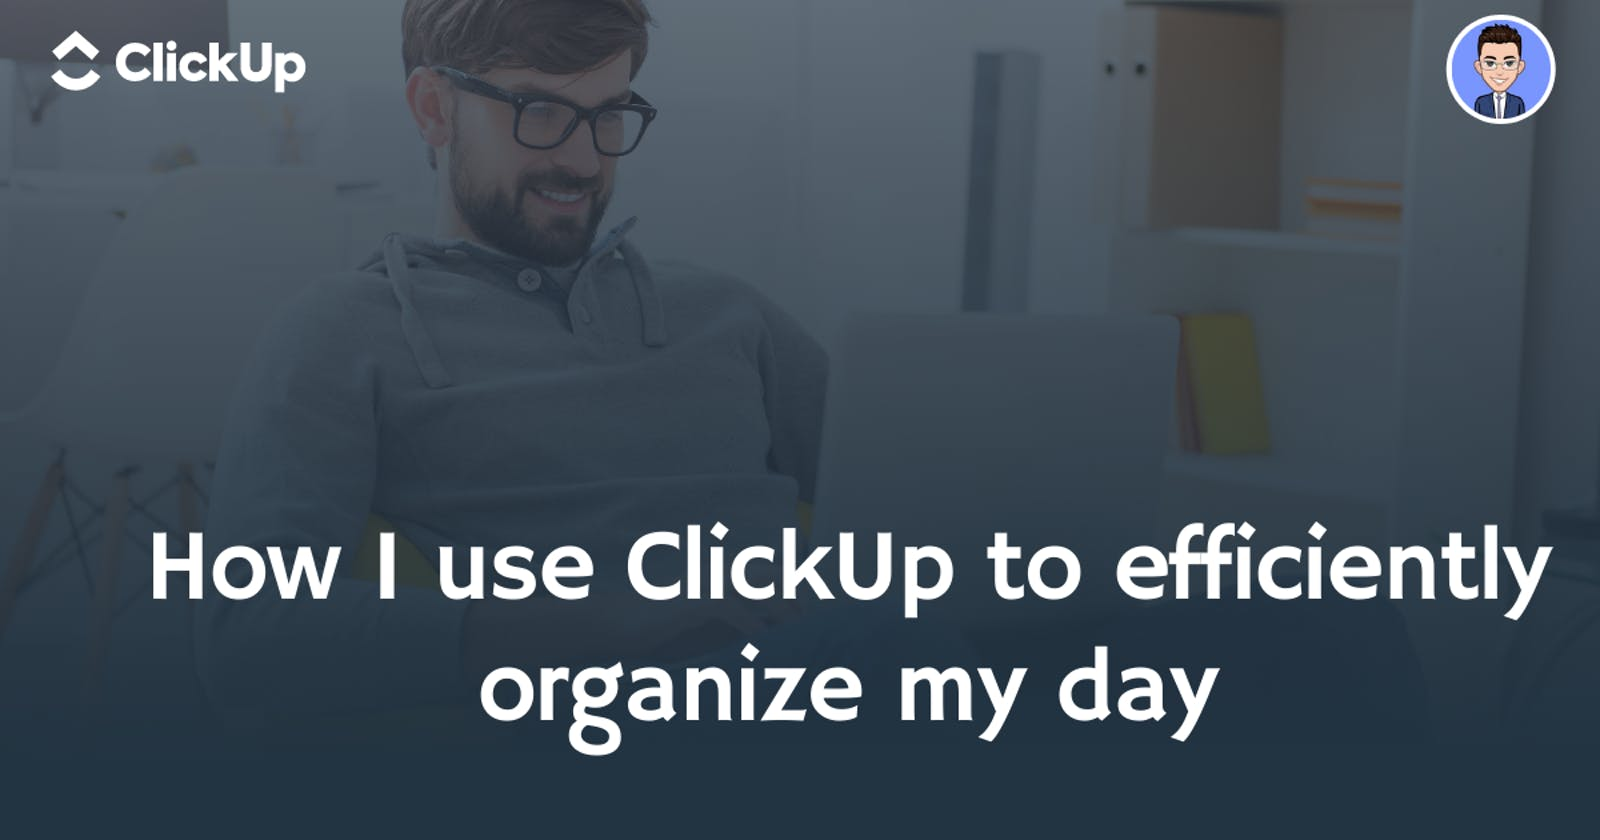 How I use ClickUp to efficiently organize my day